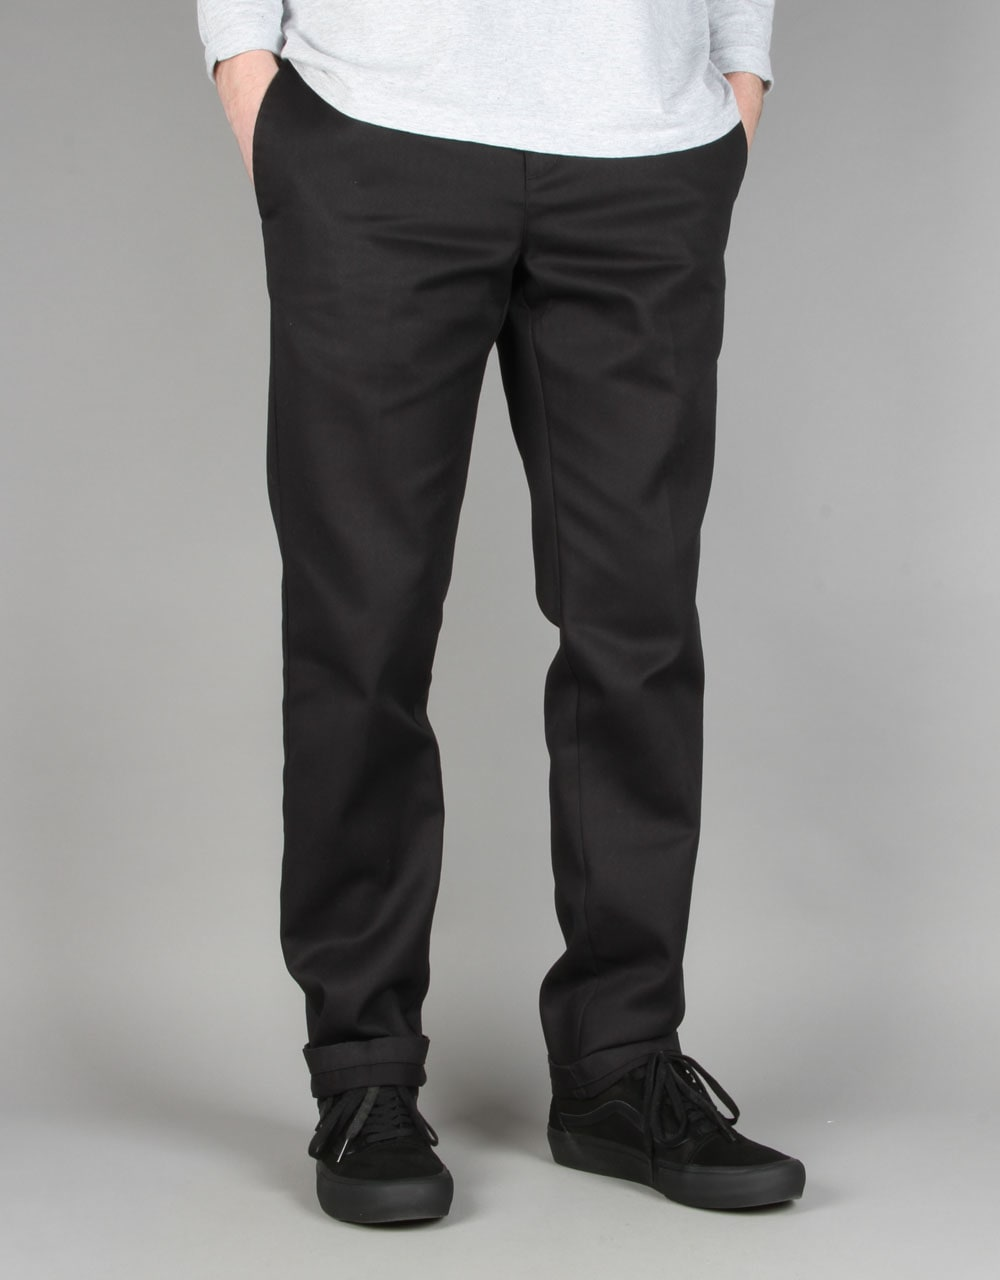 Dickies is known for making pants that last. In addition to being made of cotton and having a slim fit, these pants offer the bonus of having pockets, which I personally really like. Dickies Slim Fit Twill Pant $ 5. G2 Chic Solid Millennium. If you are looking for a classic black pant that looks great and is affordable, look no further.